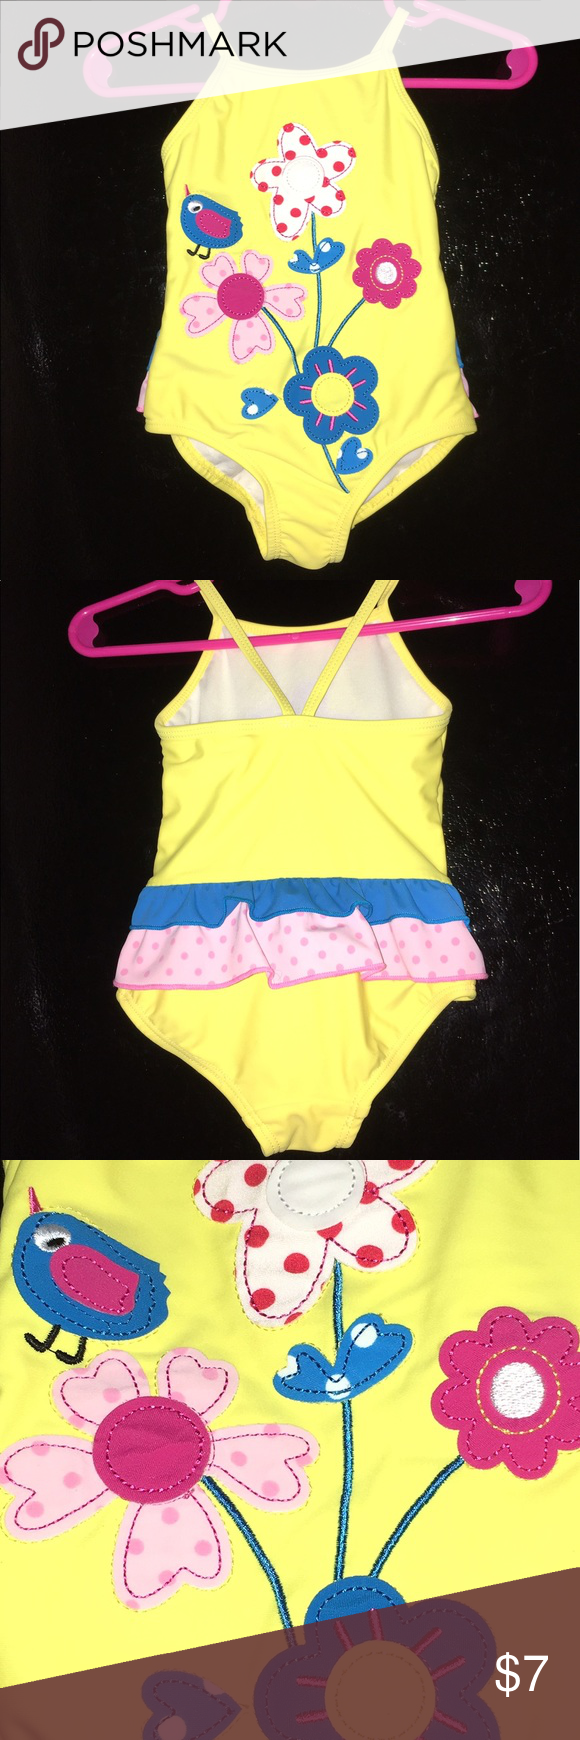 Infant Baby Bathing Suit Fun Yellow Bathing Suit For 6 To 9 Month Old Tag Says 12 Months But It Runs Small Baby Bathing Suit Yellow Bathing Suit Bathing Suits